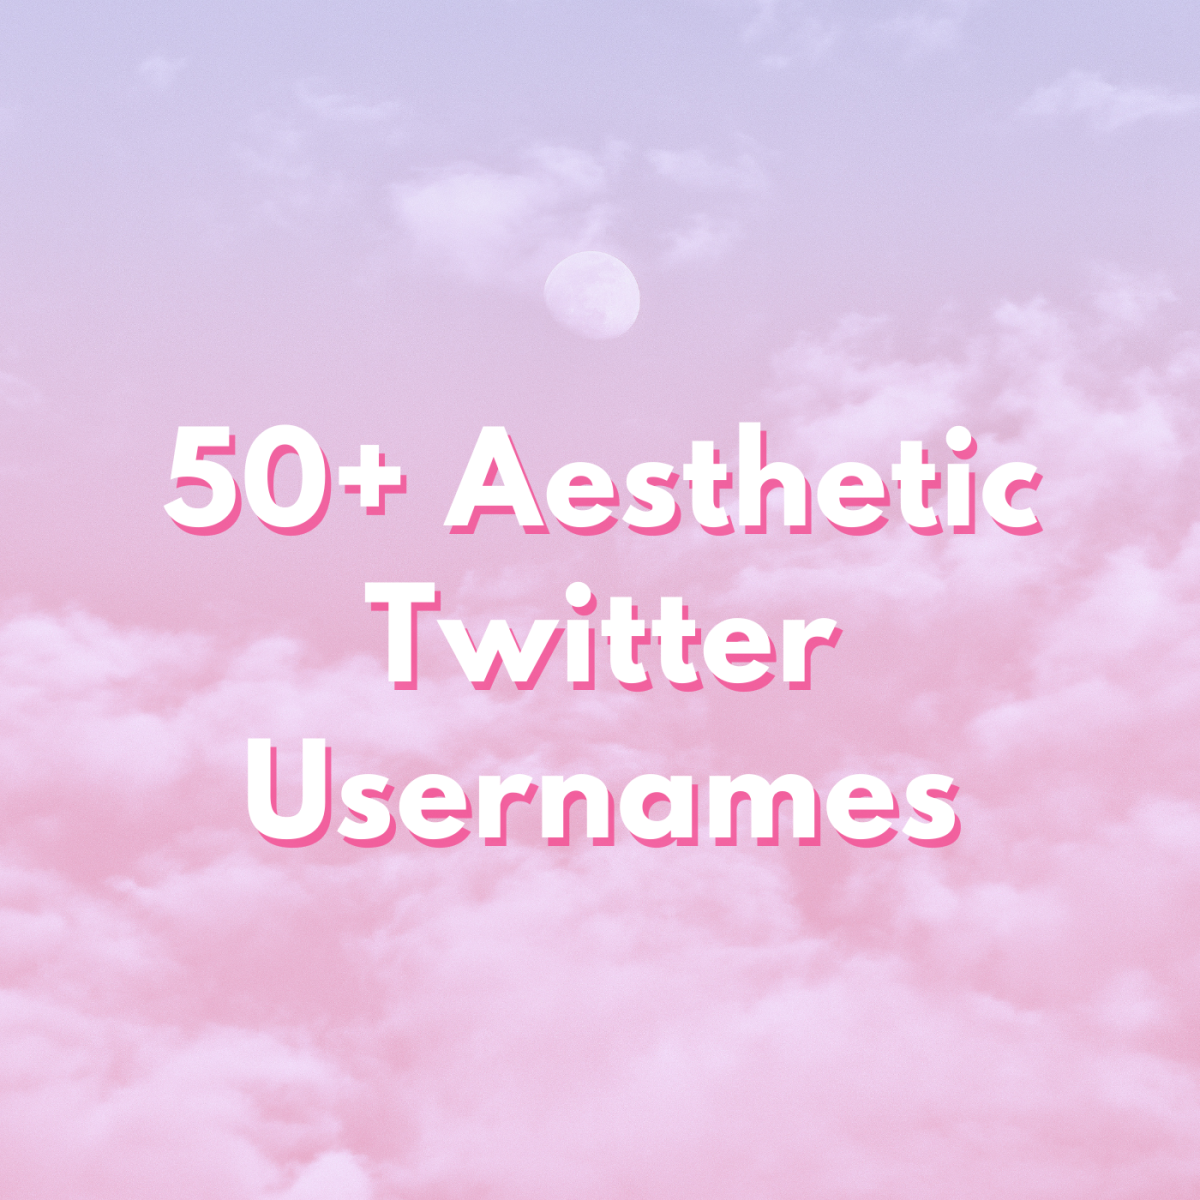 Discover over 50 aesthetic Twitter usernames and ideas in this in-depth guide!